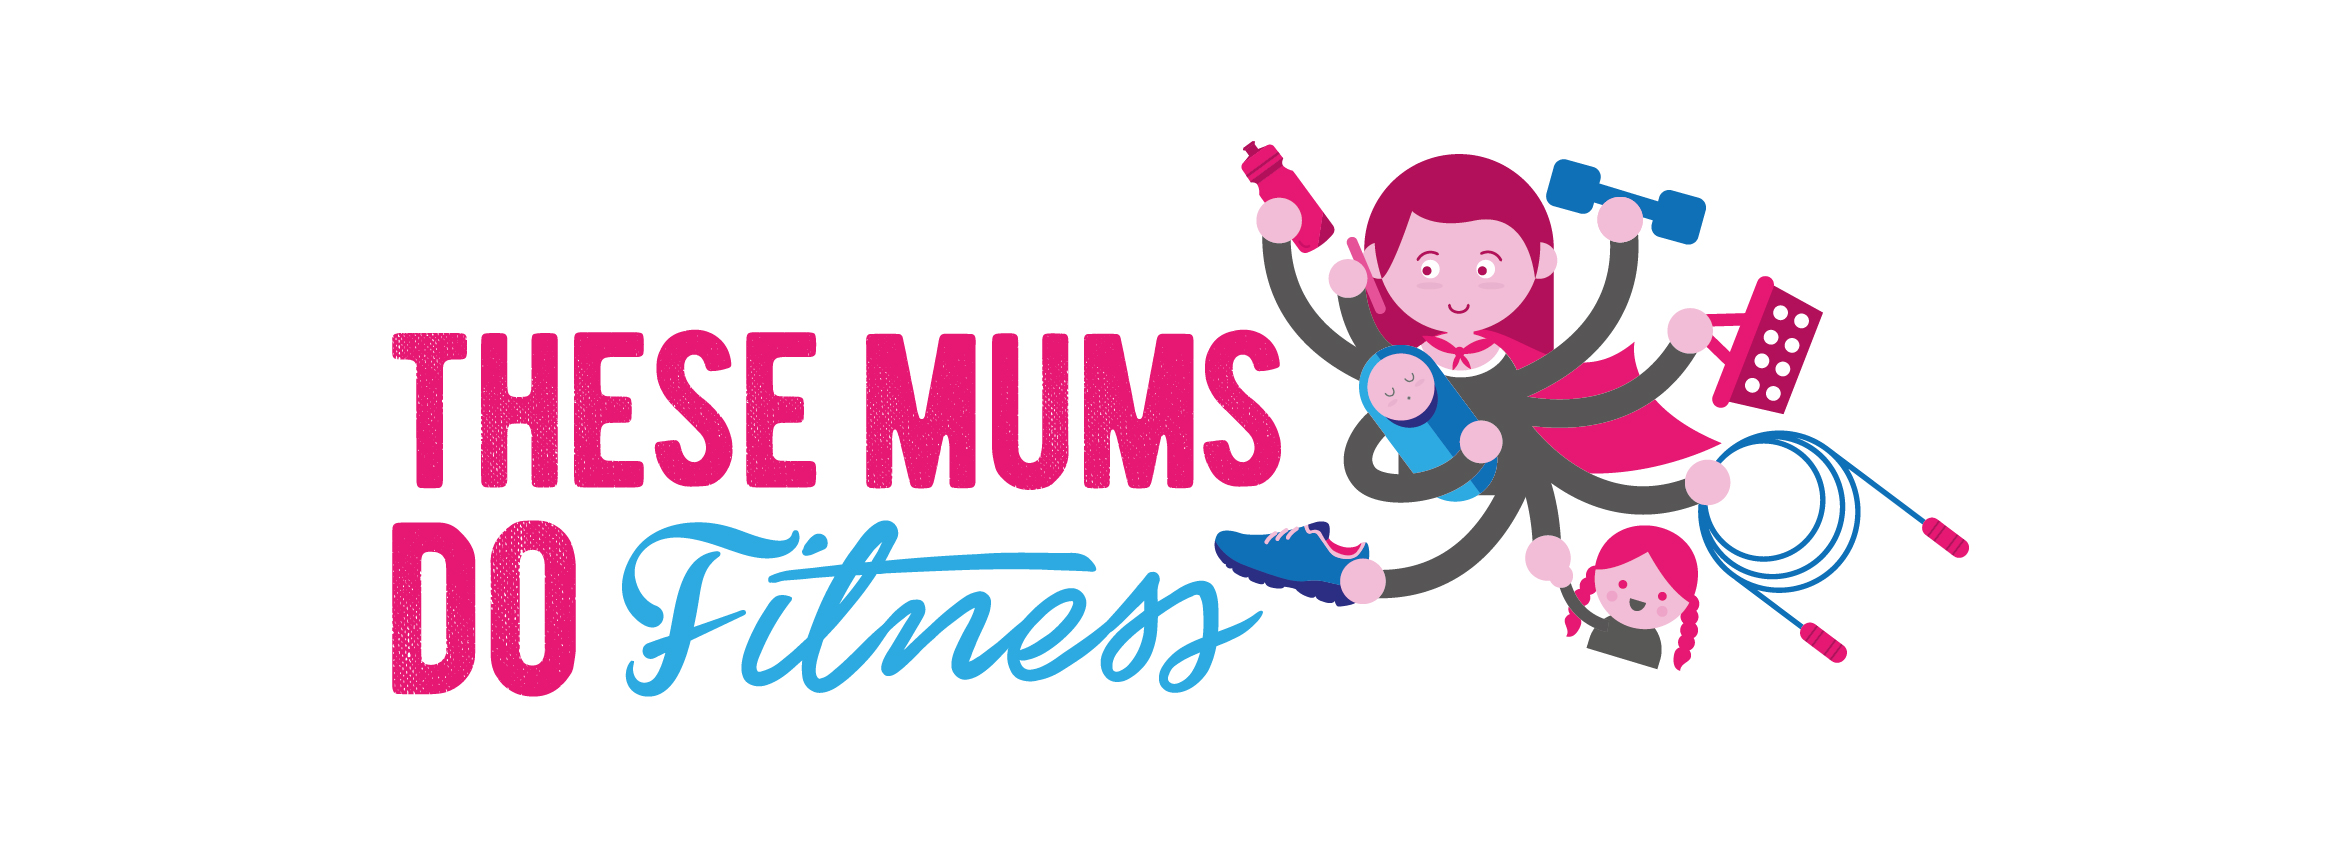 These Mums Do